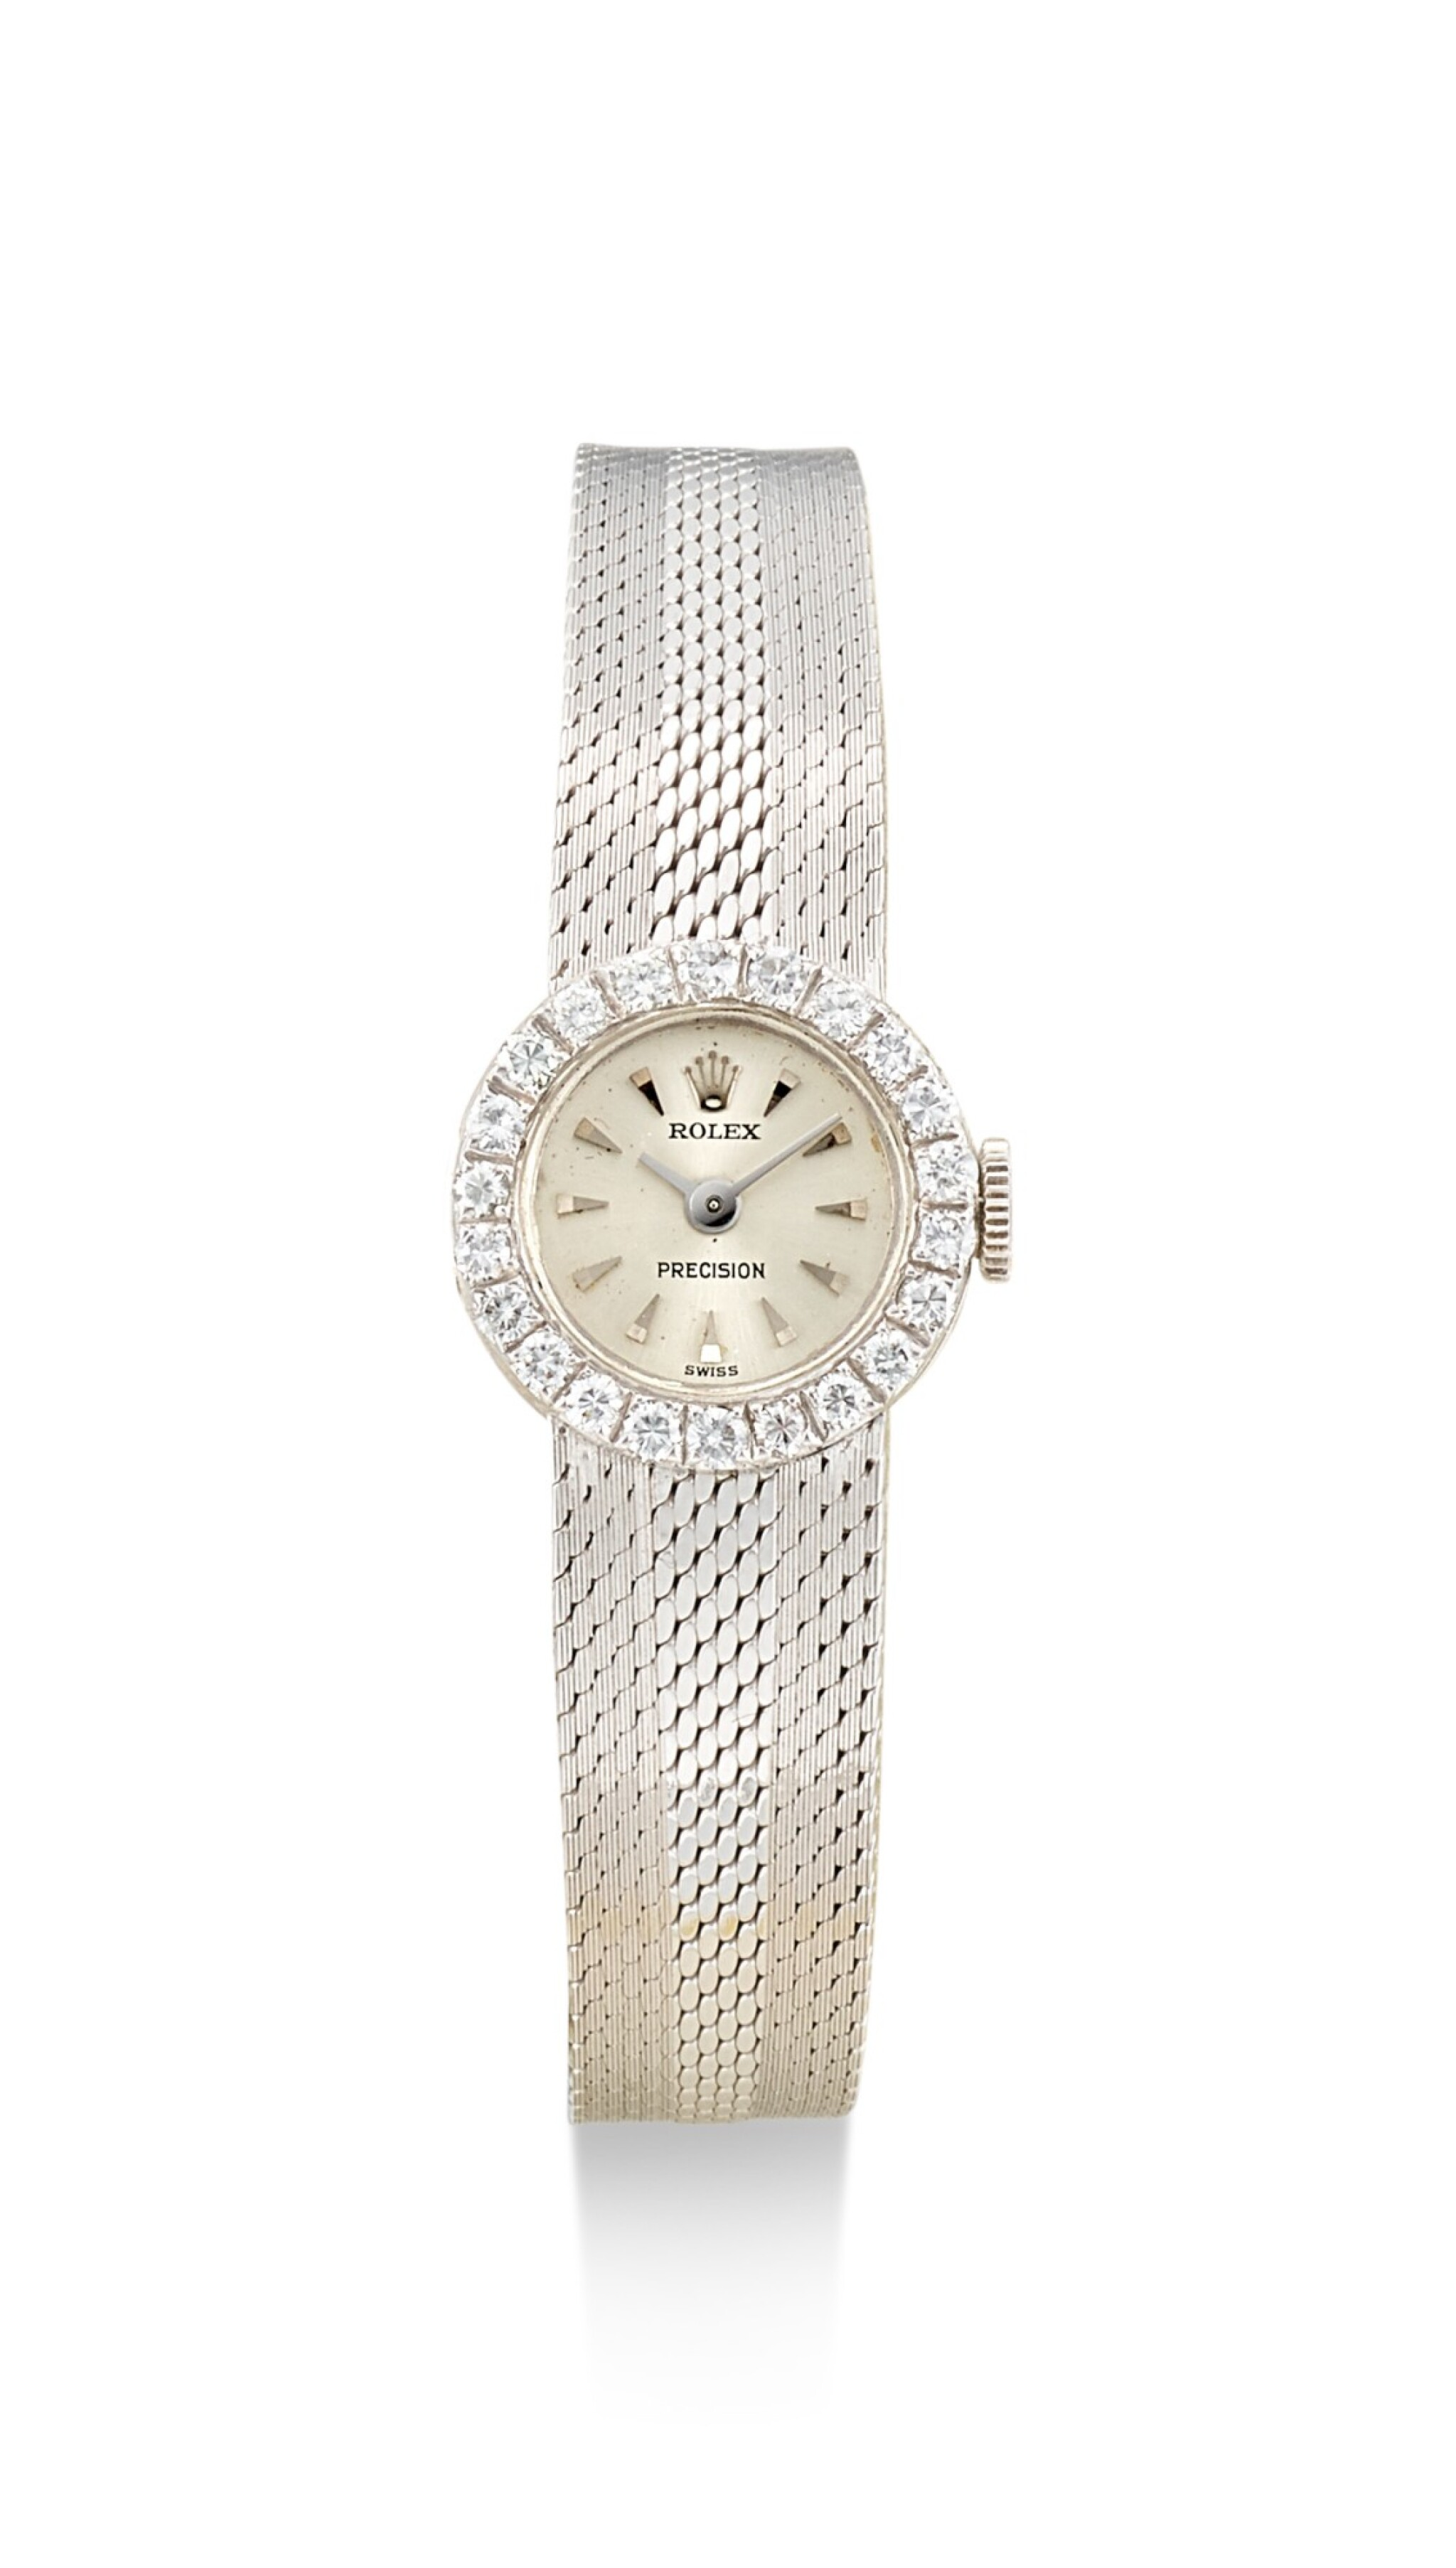 ROLEX | LADY PRECISION, REFERENCE 2166, A WHITE GOLD AND DIAMOND-SET BRACELET WATCH, CIRCA 1968